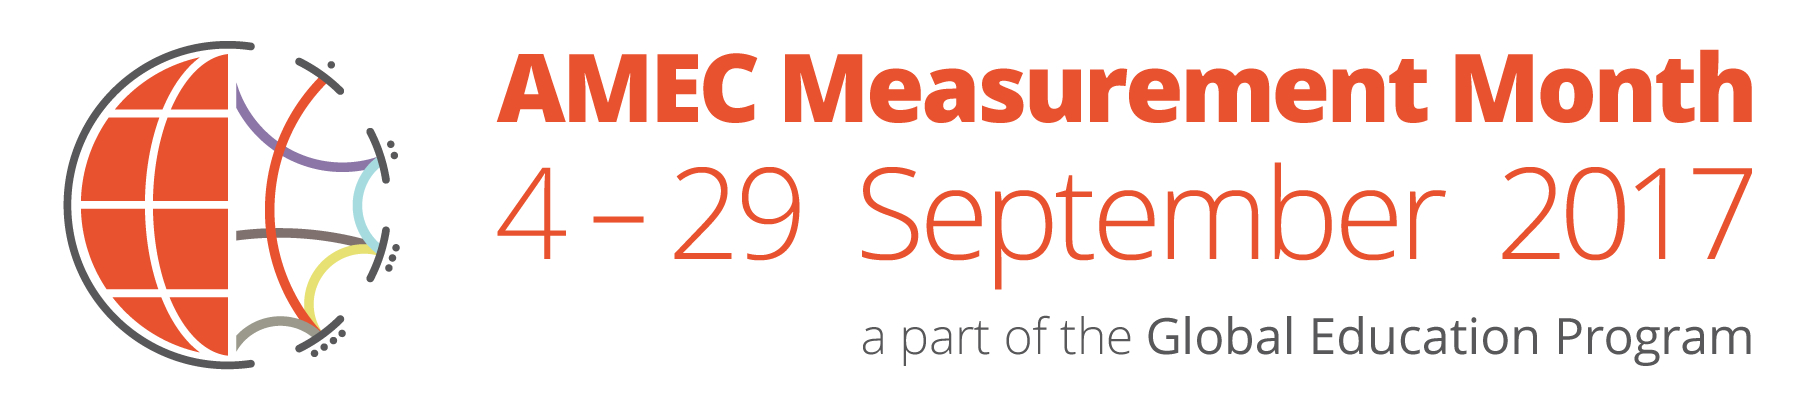 AMEC Measurement Month 2017